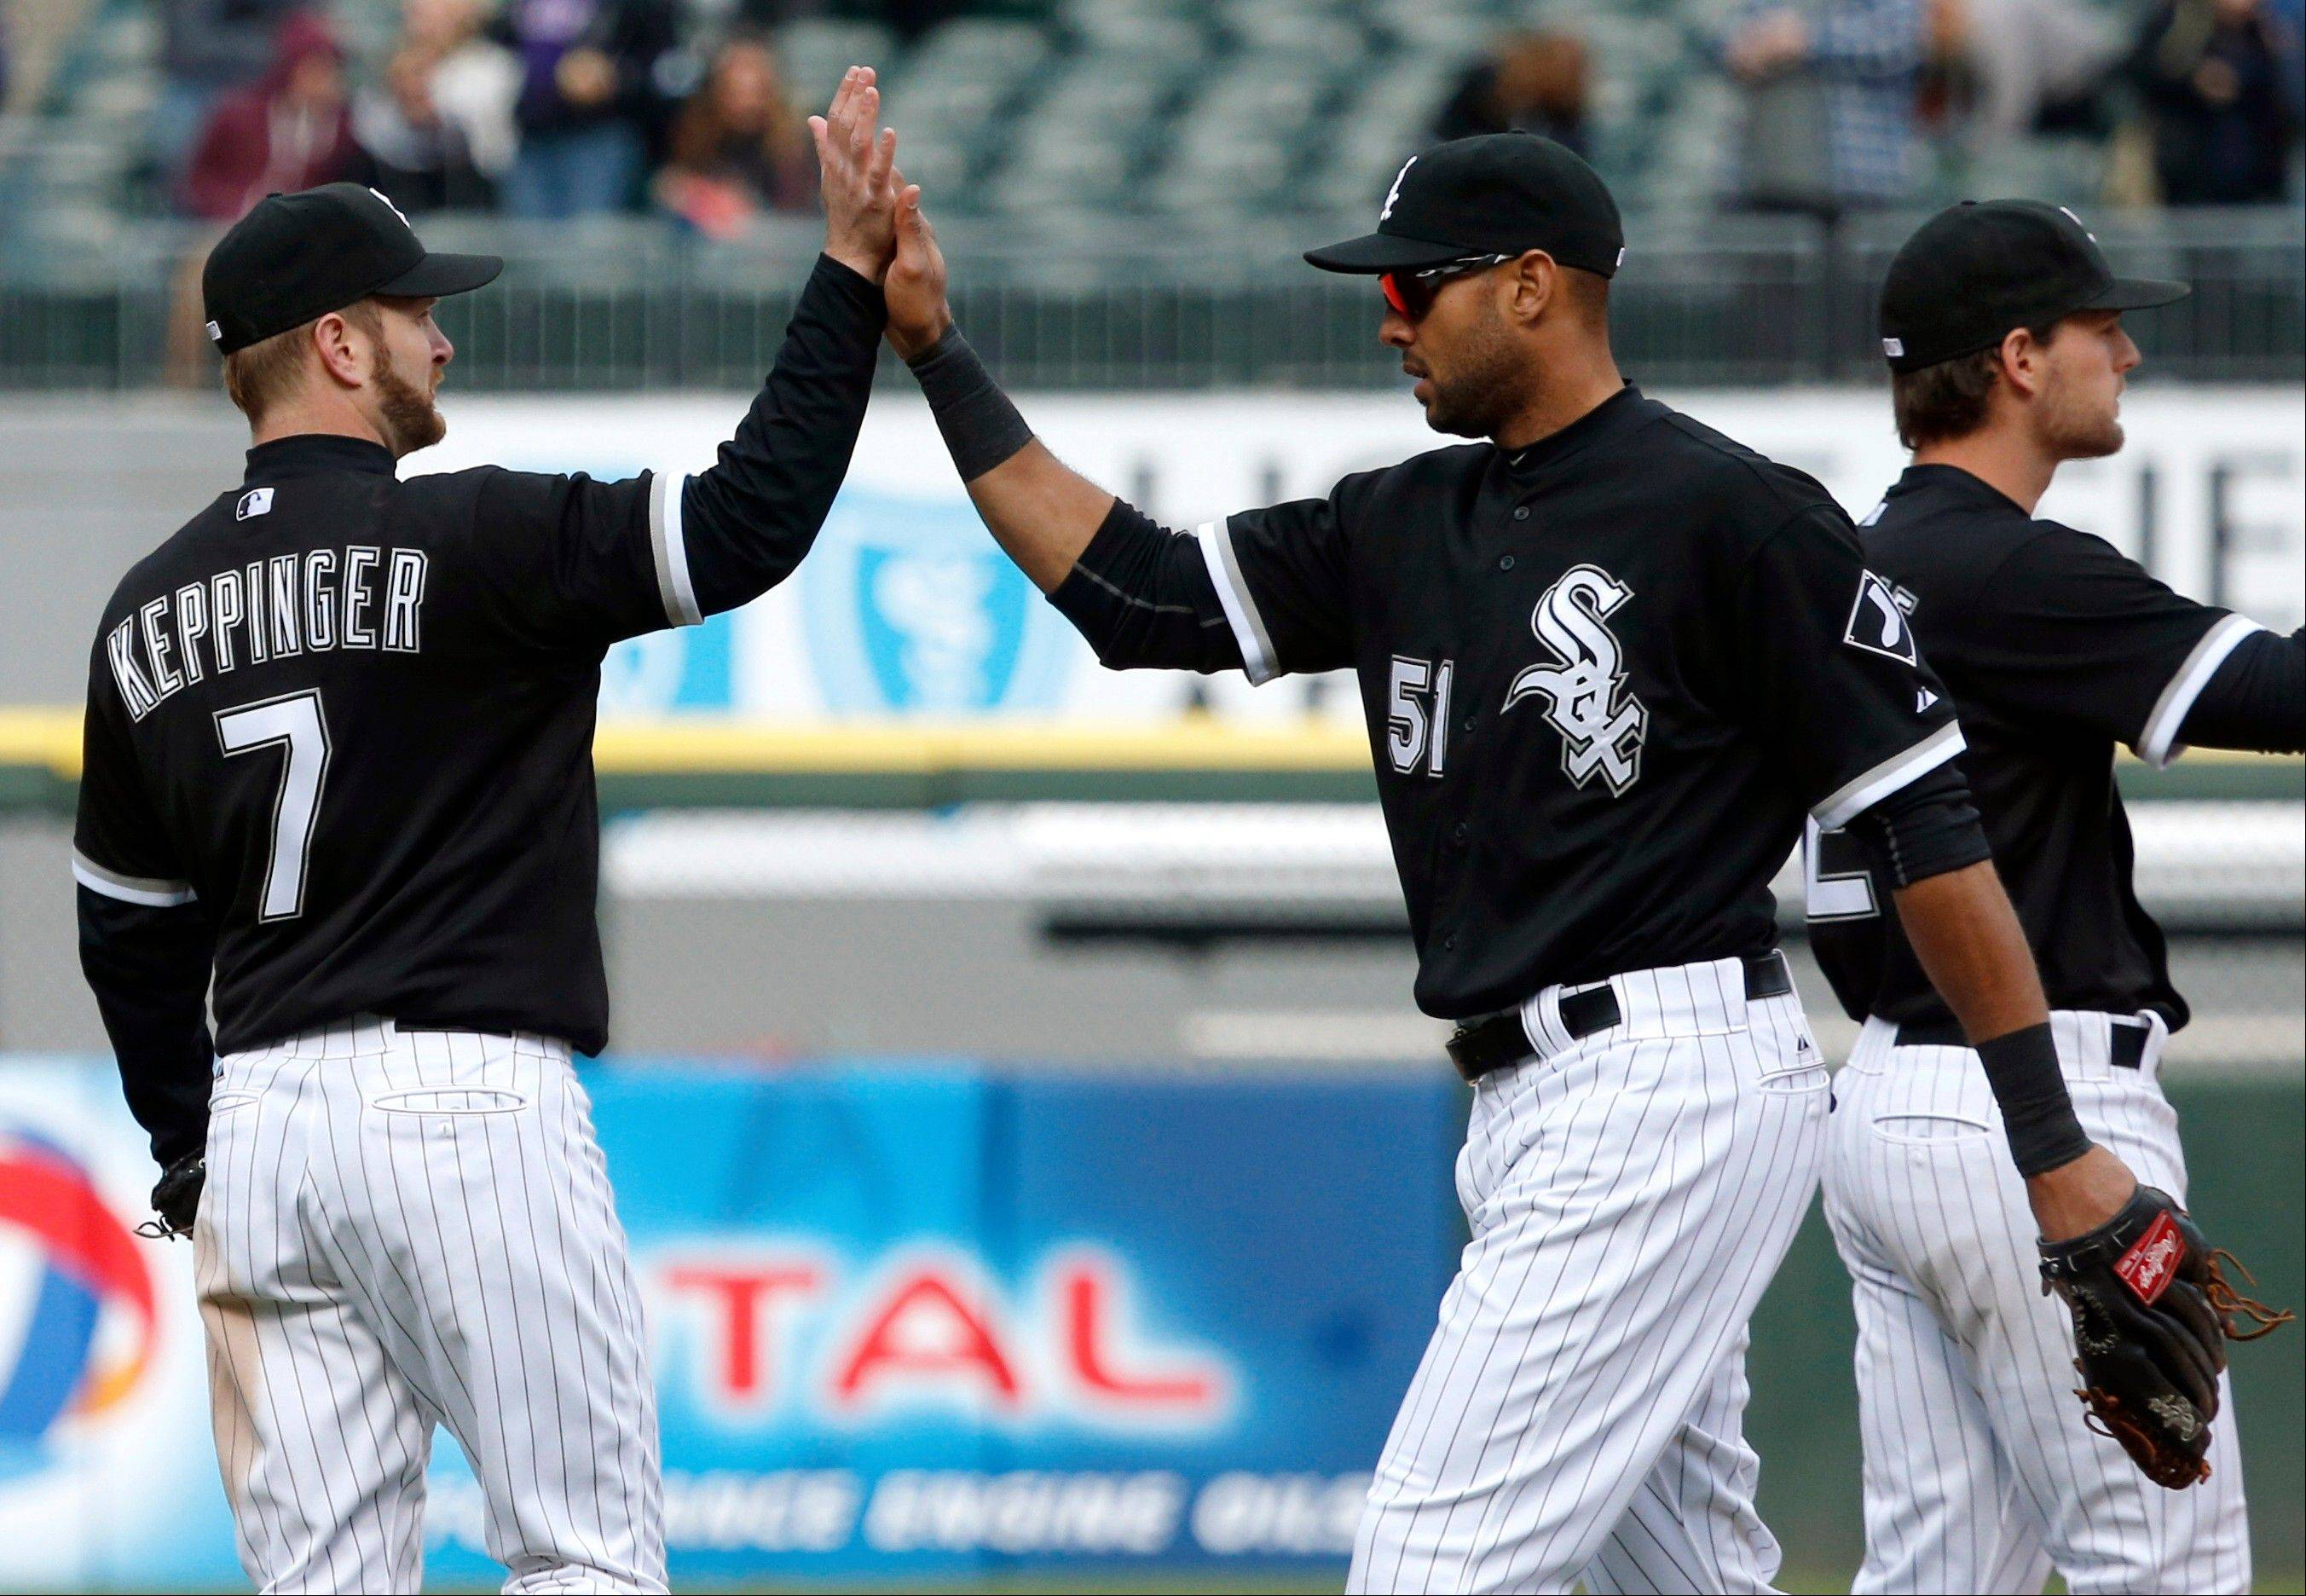 Associated Press White Sox third baseman Jeff Keppinger (7) celebrates with right fielder Alex Rios (51) after their 3-2 win over the Cleveland Indians Wednesday at U.S. Cellular Field.